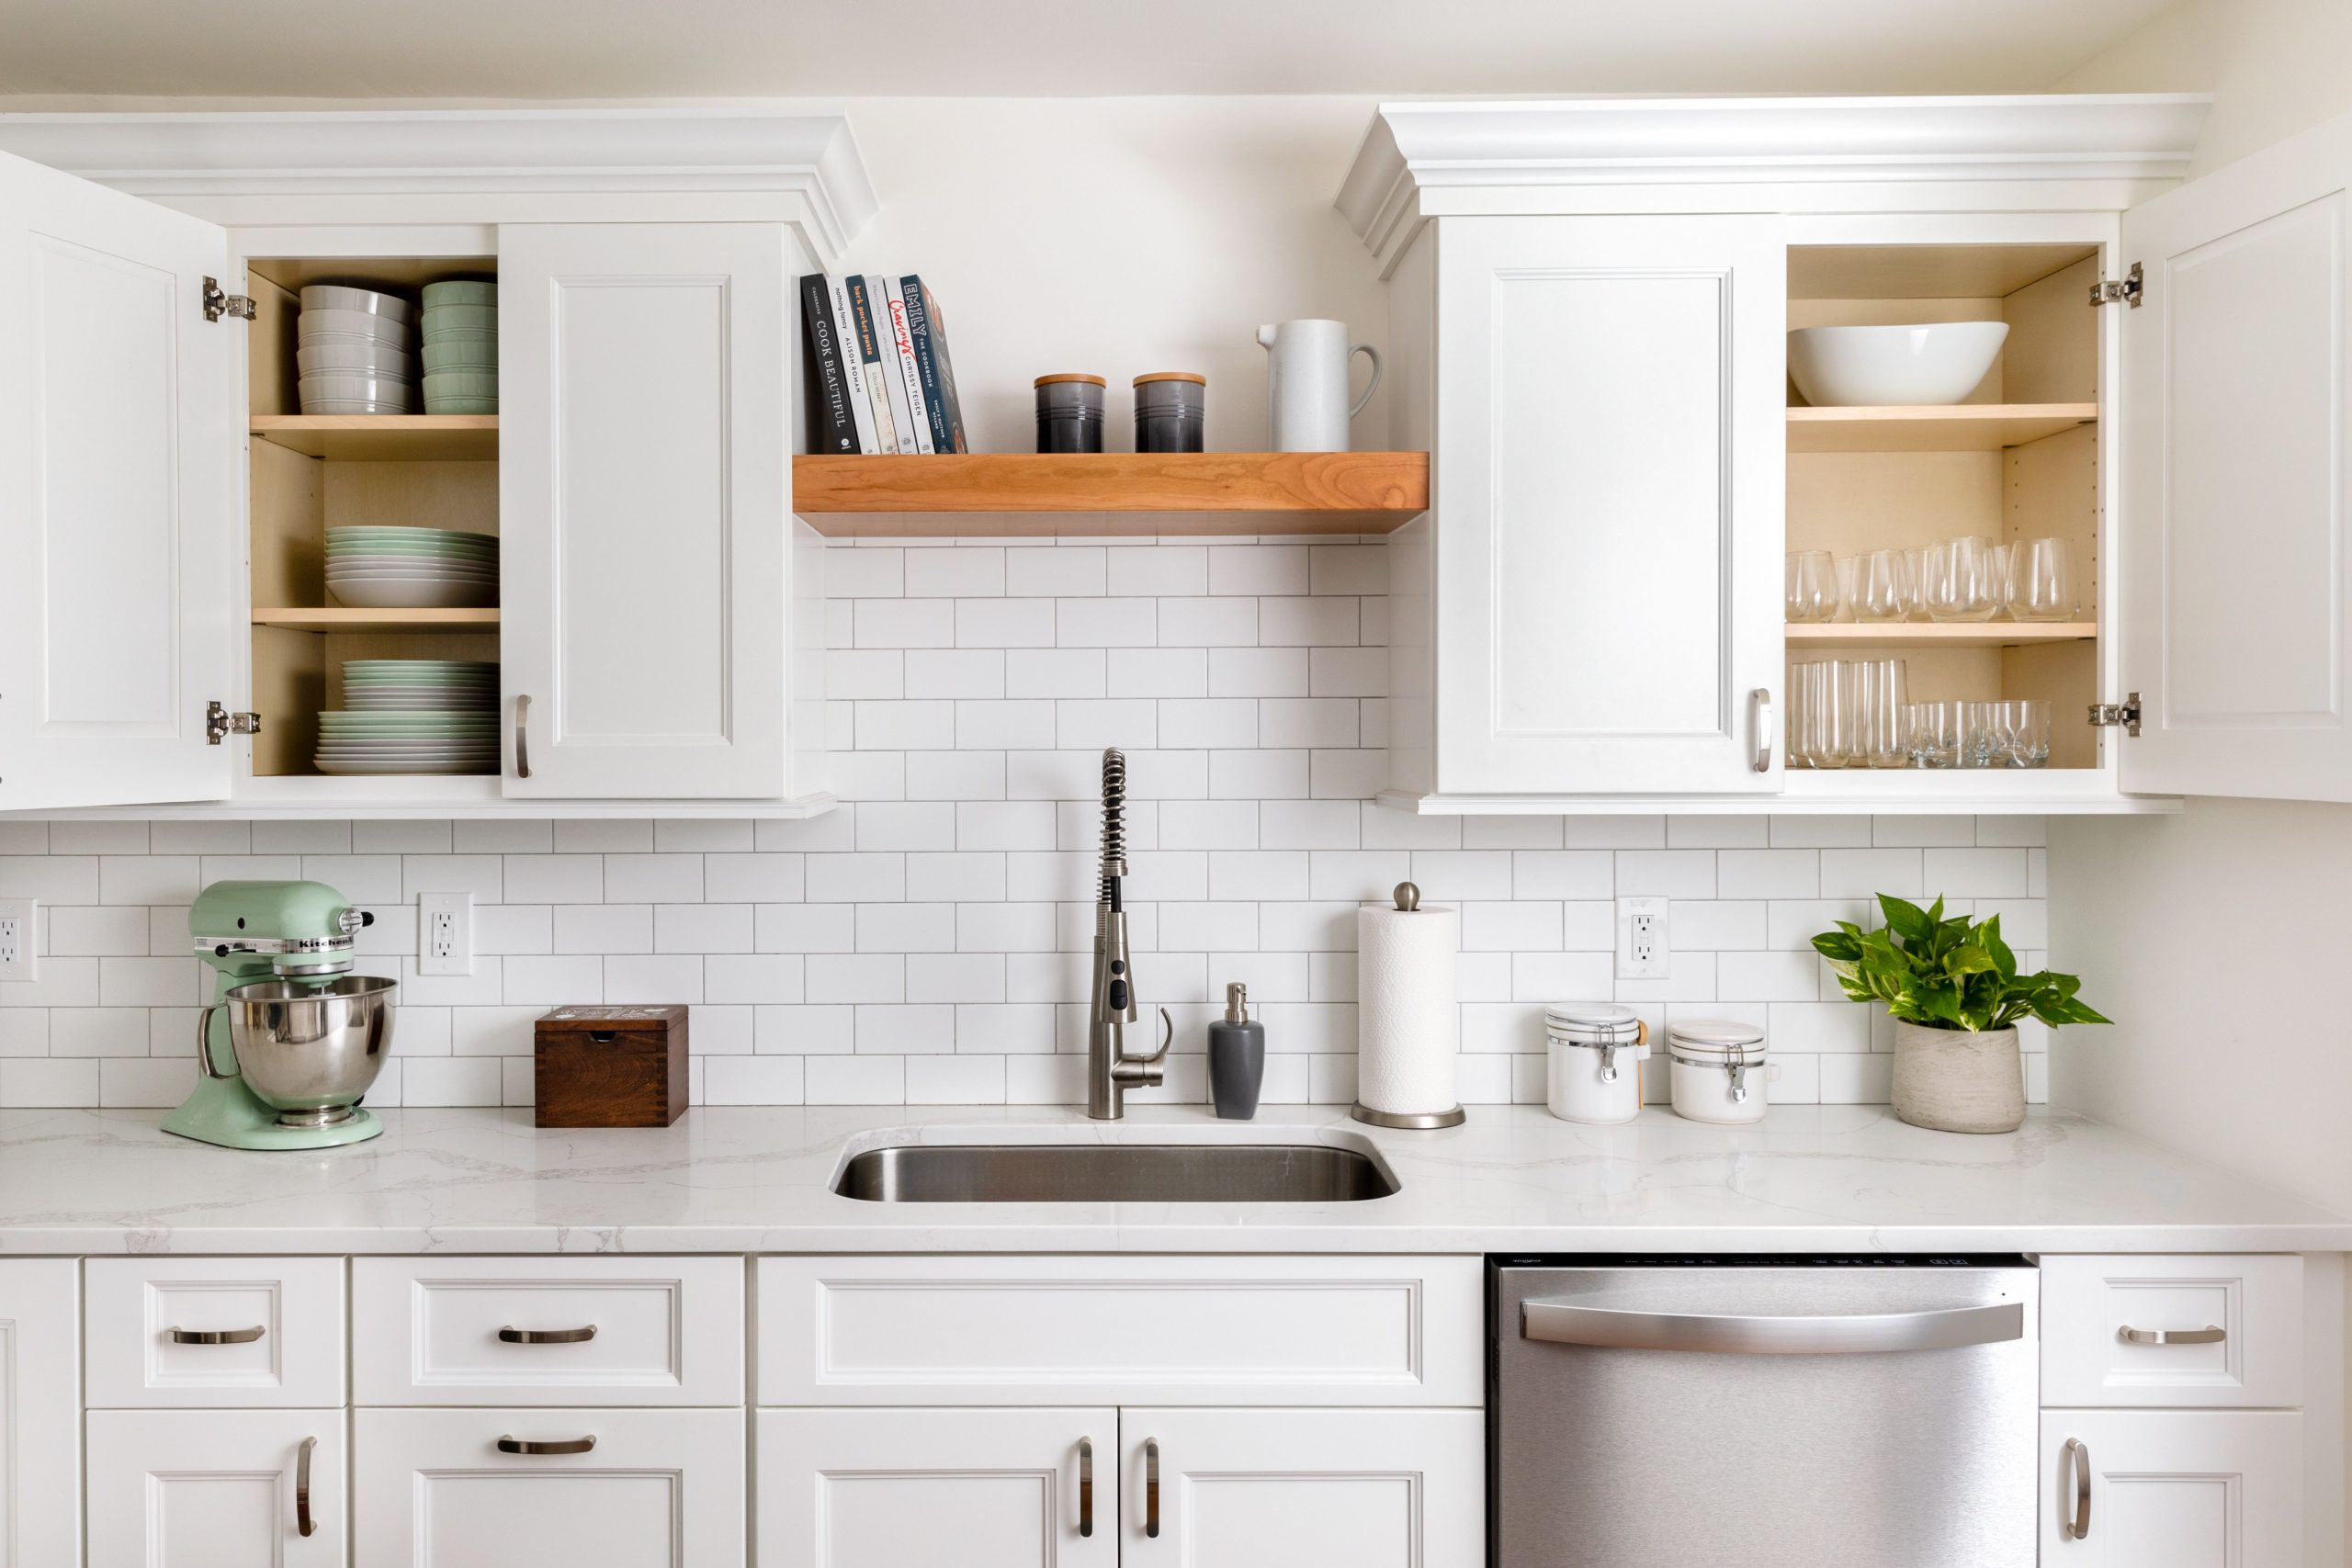 Organize your Kitchen Cabinets - How To Place Items In Kitchen Cabinets